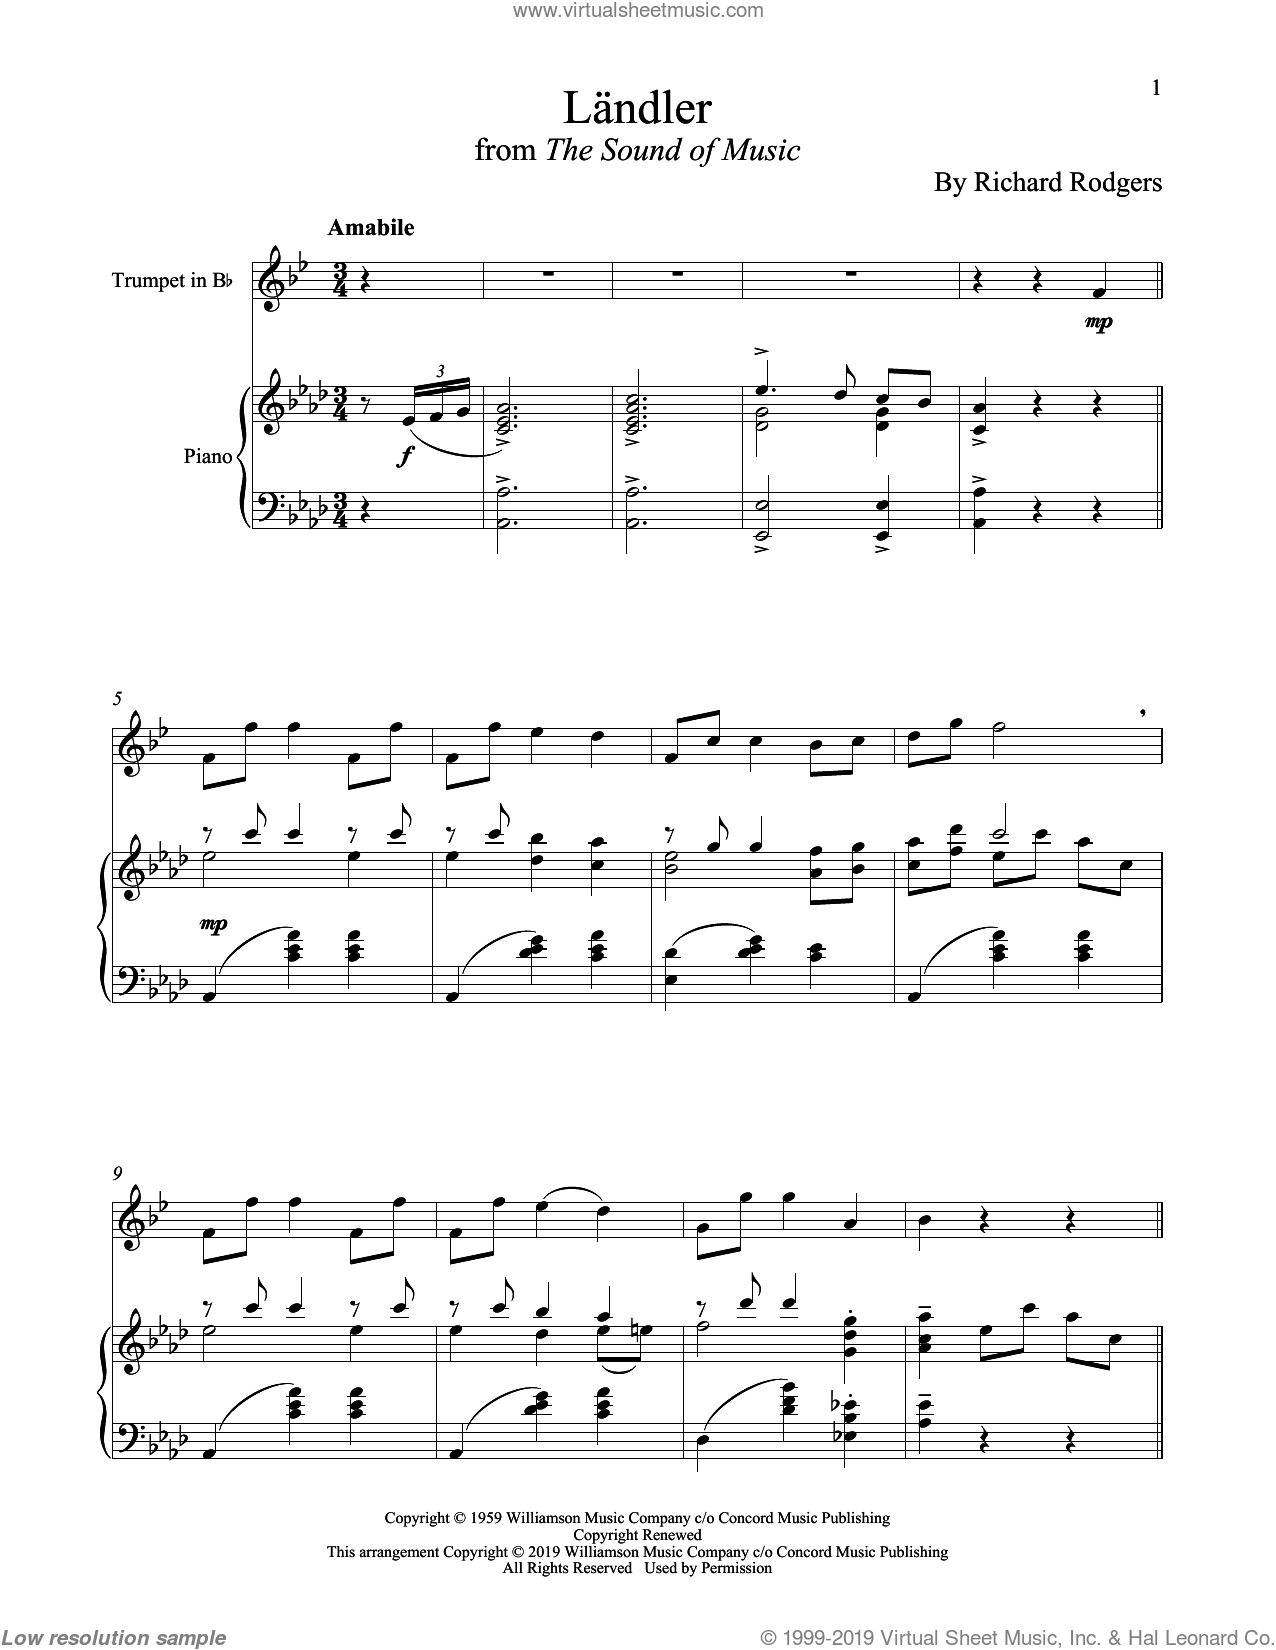 Landler (from The Sound of Music) sheet music for trumpet and piano by Richard Rodgers, Oscar II Hammerstein and Rodgers & Hammerstein, intermediate skill level